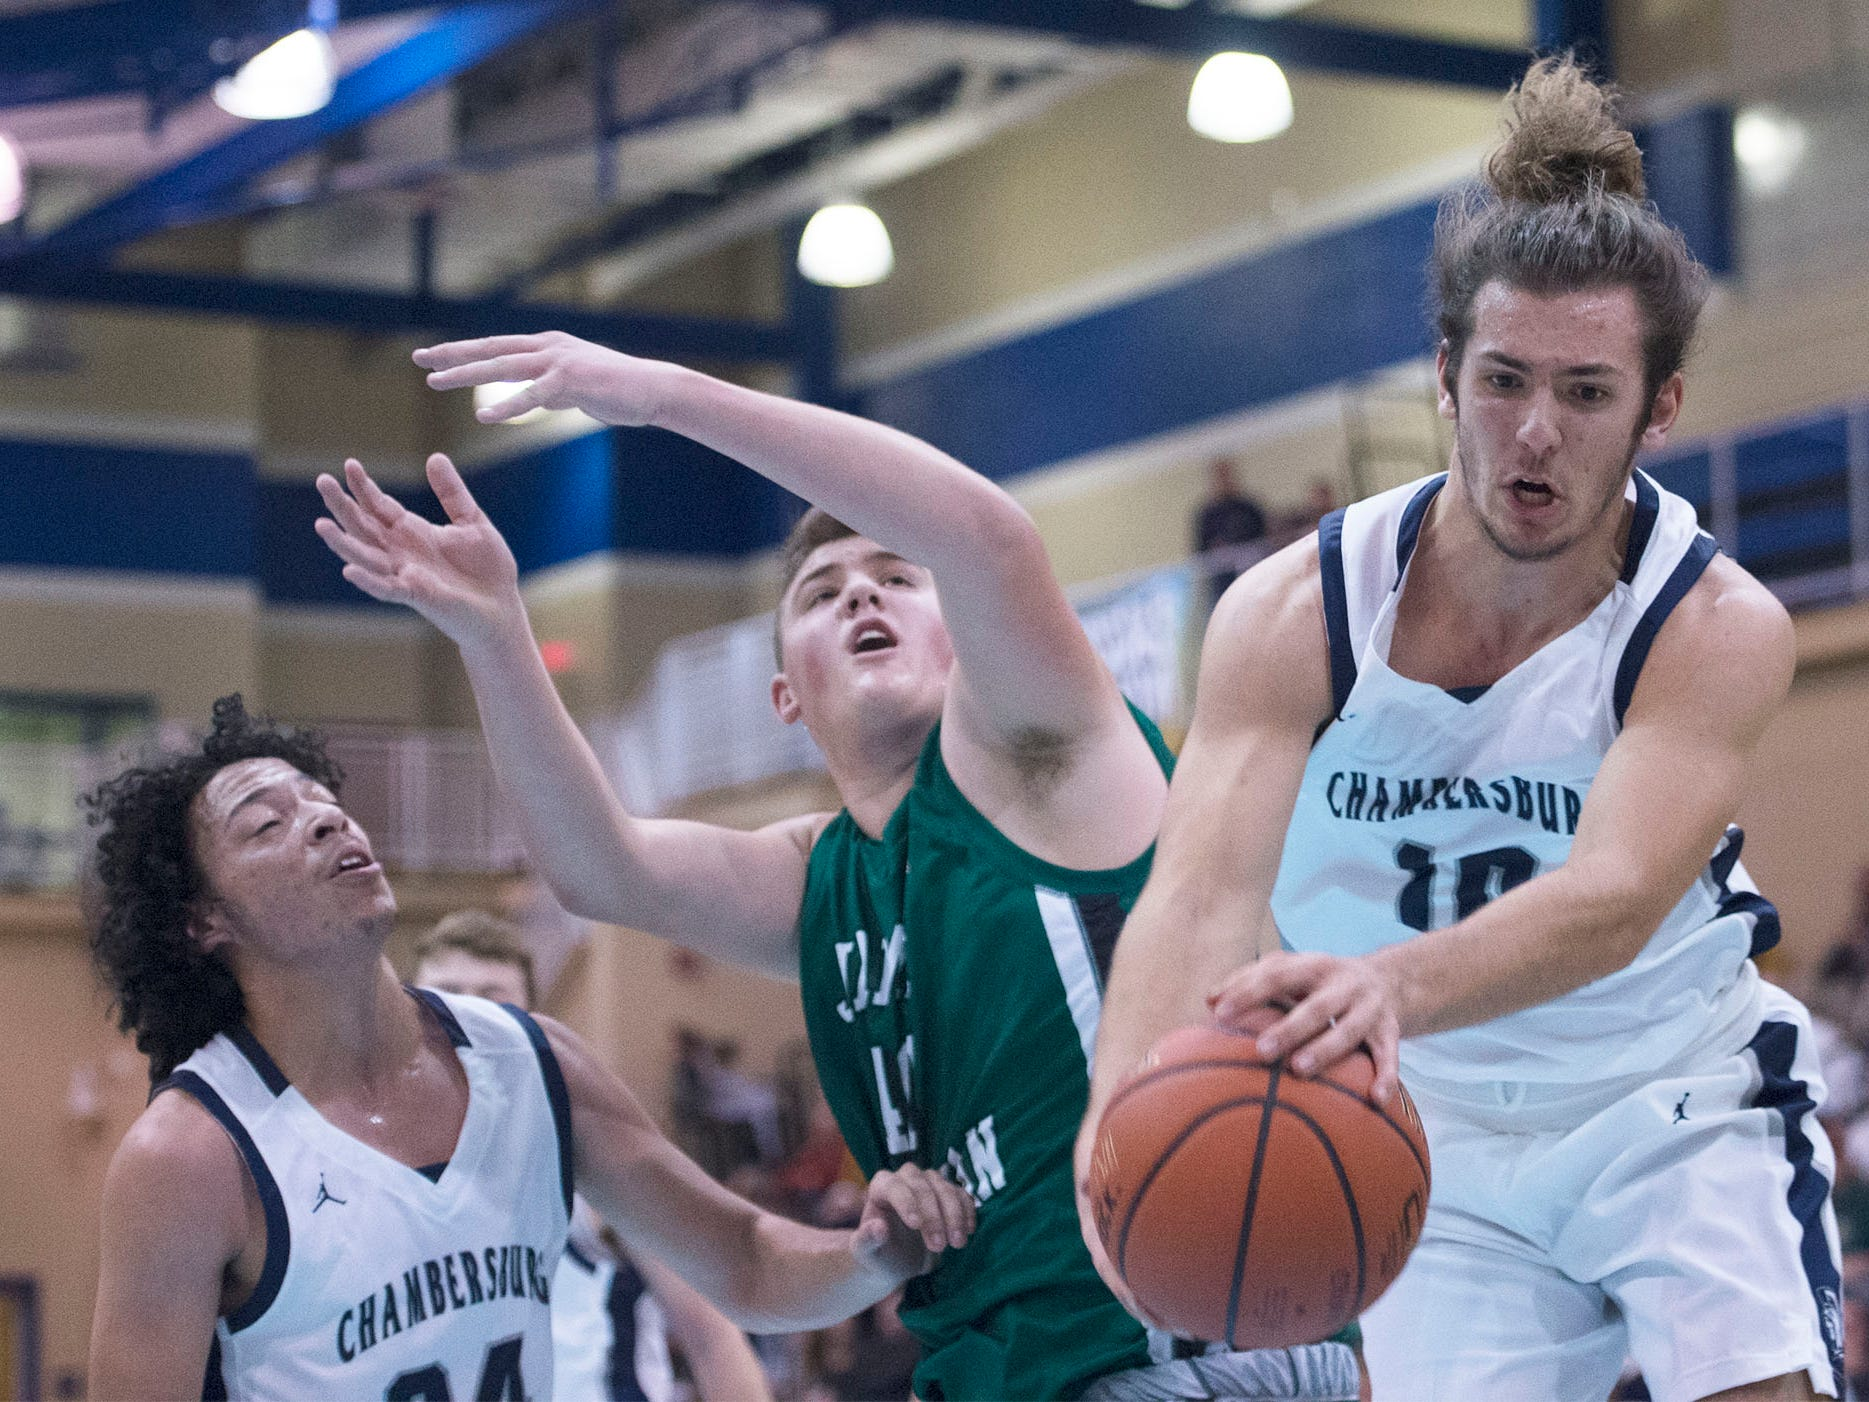 Chambersburg's Seth Brouse gets a rebound. Chambersburg played James Buchanan boys during the Franklin County Tip-Off Tournament, Friday, Dec. 7, 2018.